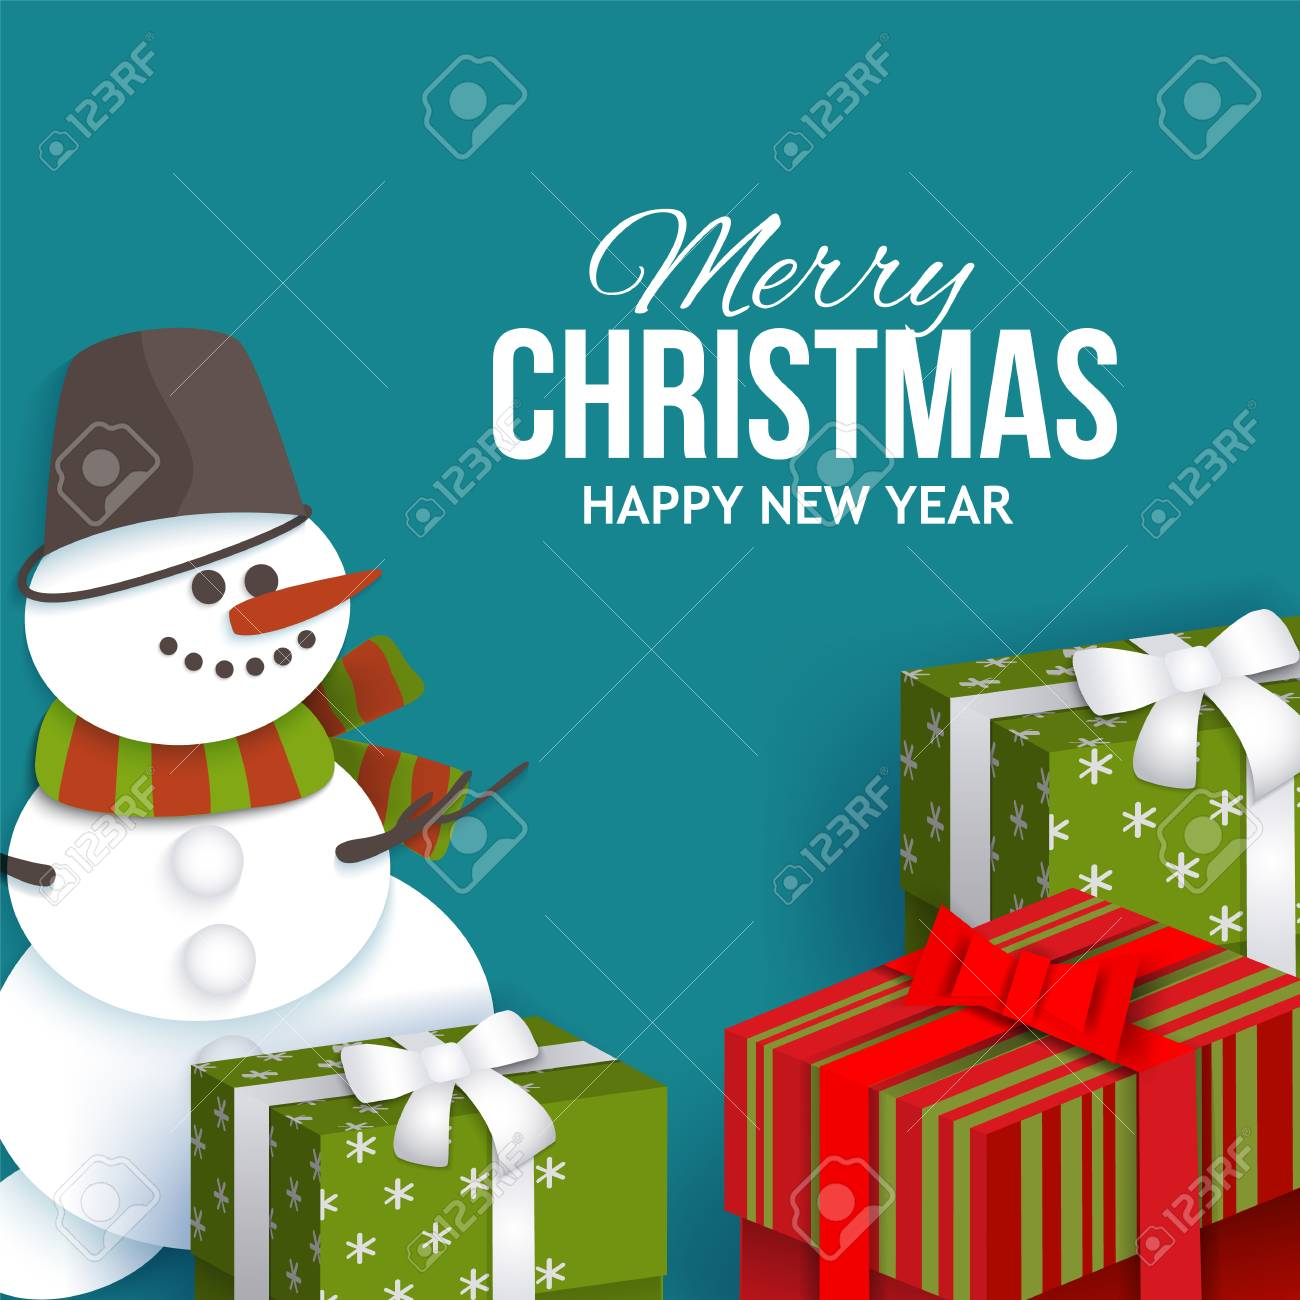 Merry christmas greeting card template with paper cut snowman merry christmas greeting card template with paper cut snowman and present boxes vector illustration m4hsunfo